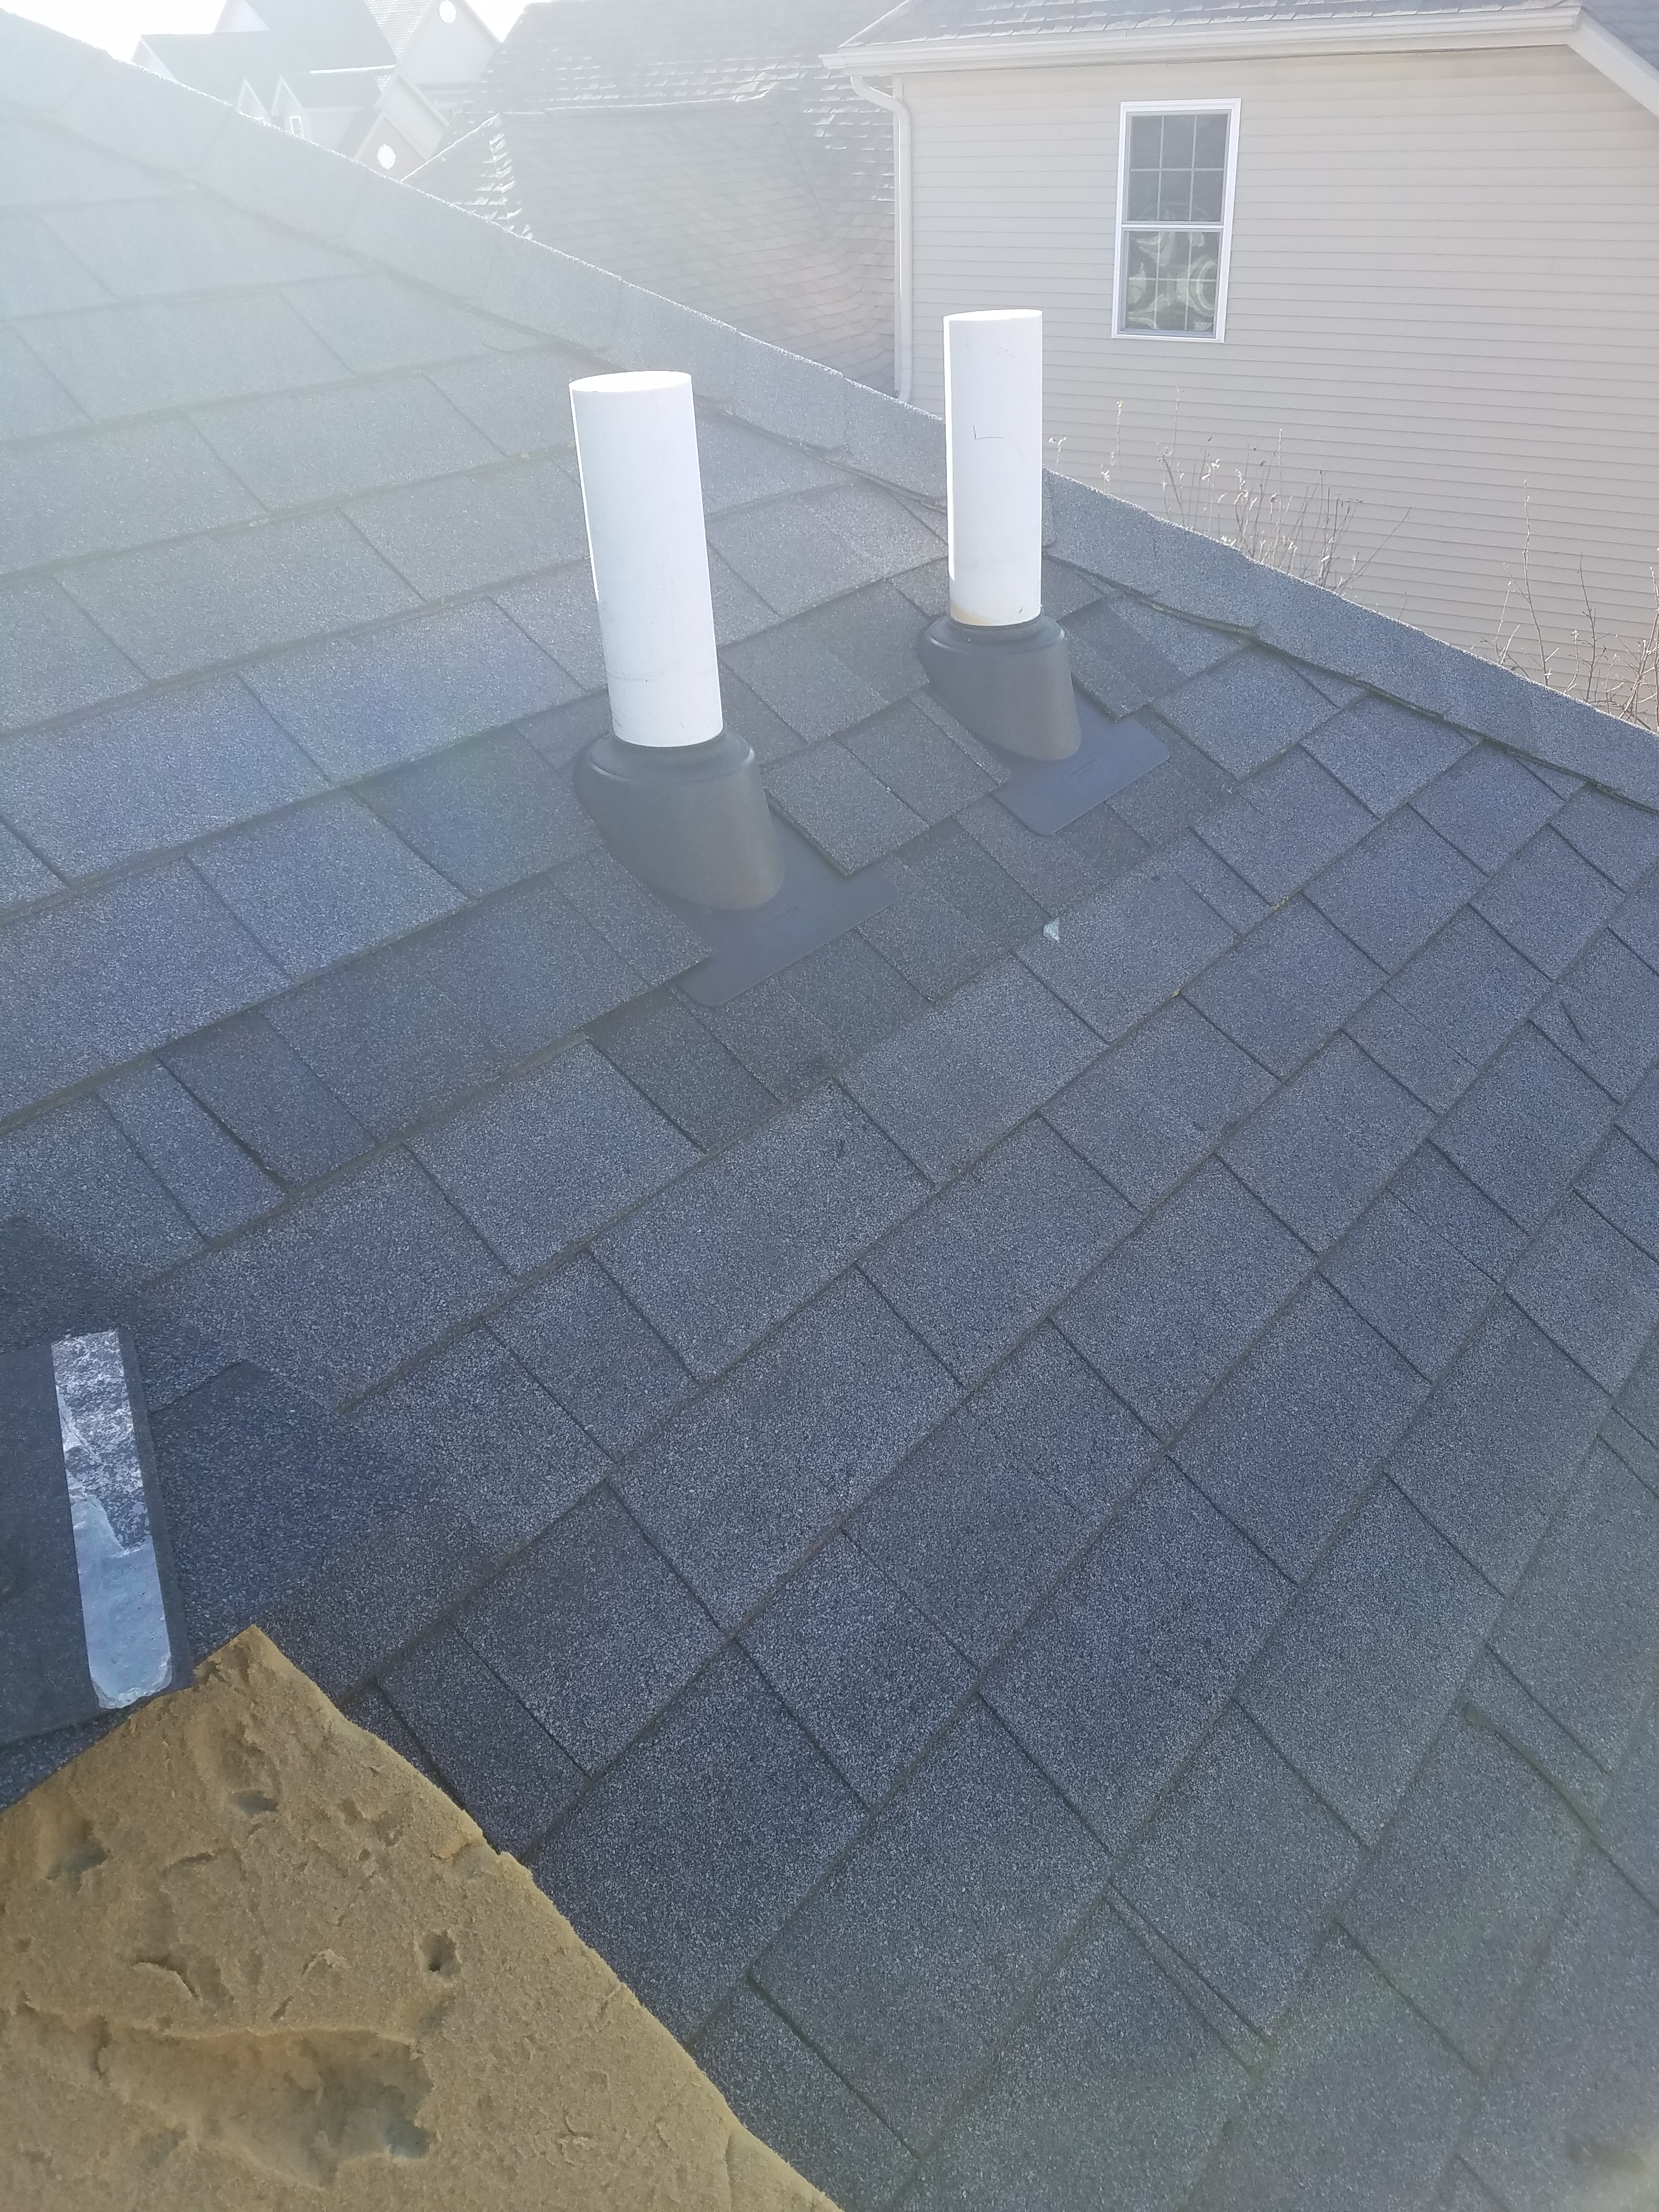 a roof leak was caused by cracked pipe boots new pipe boots were added and - Roof Boots